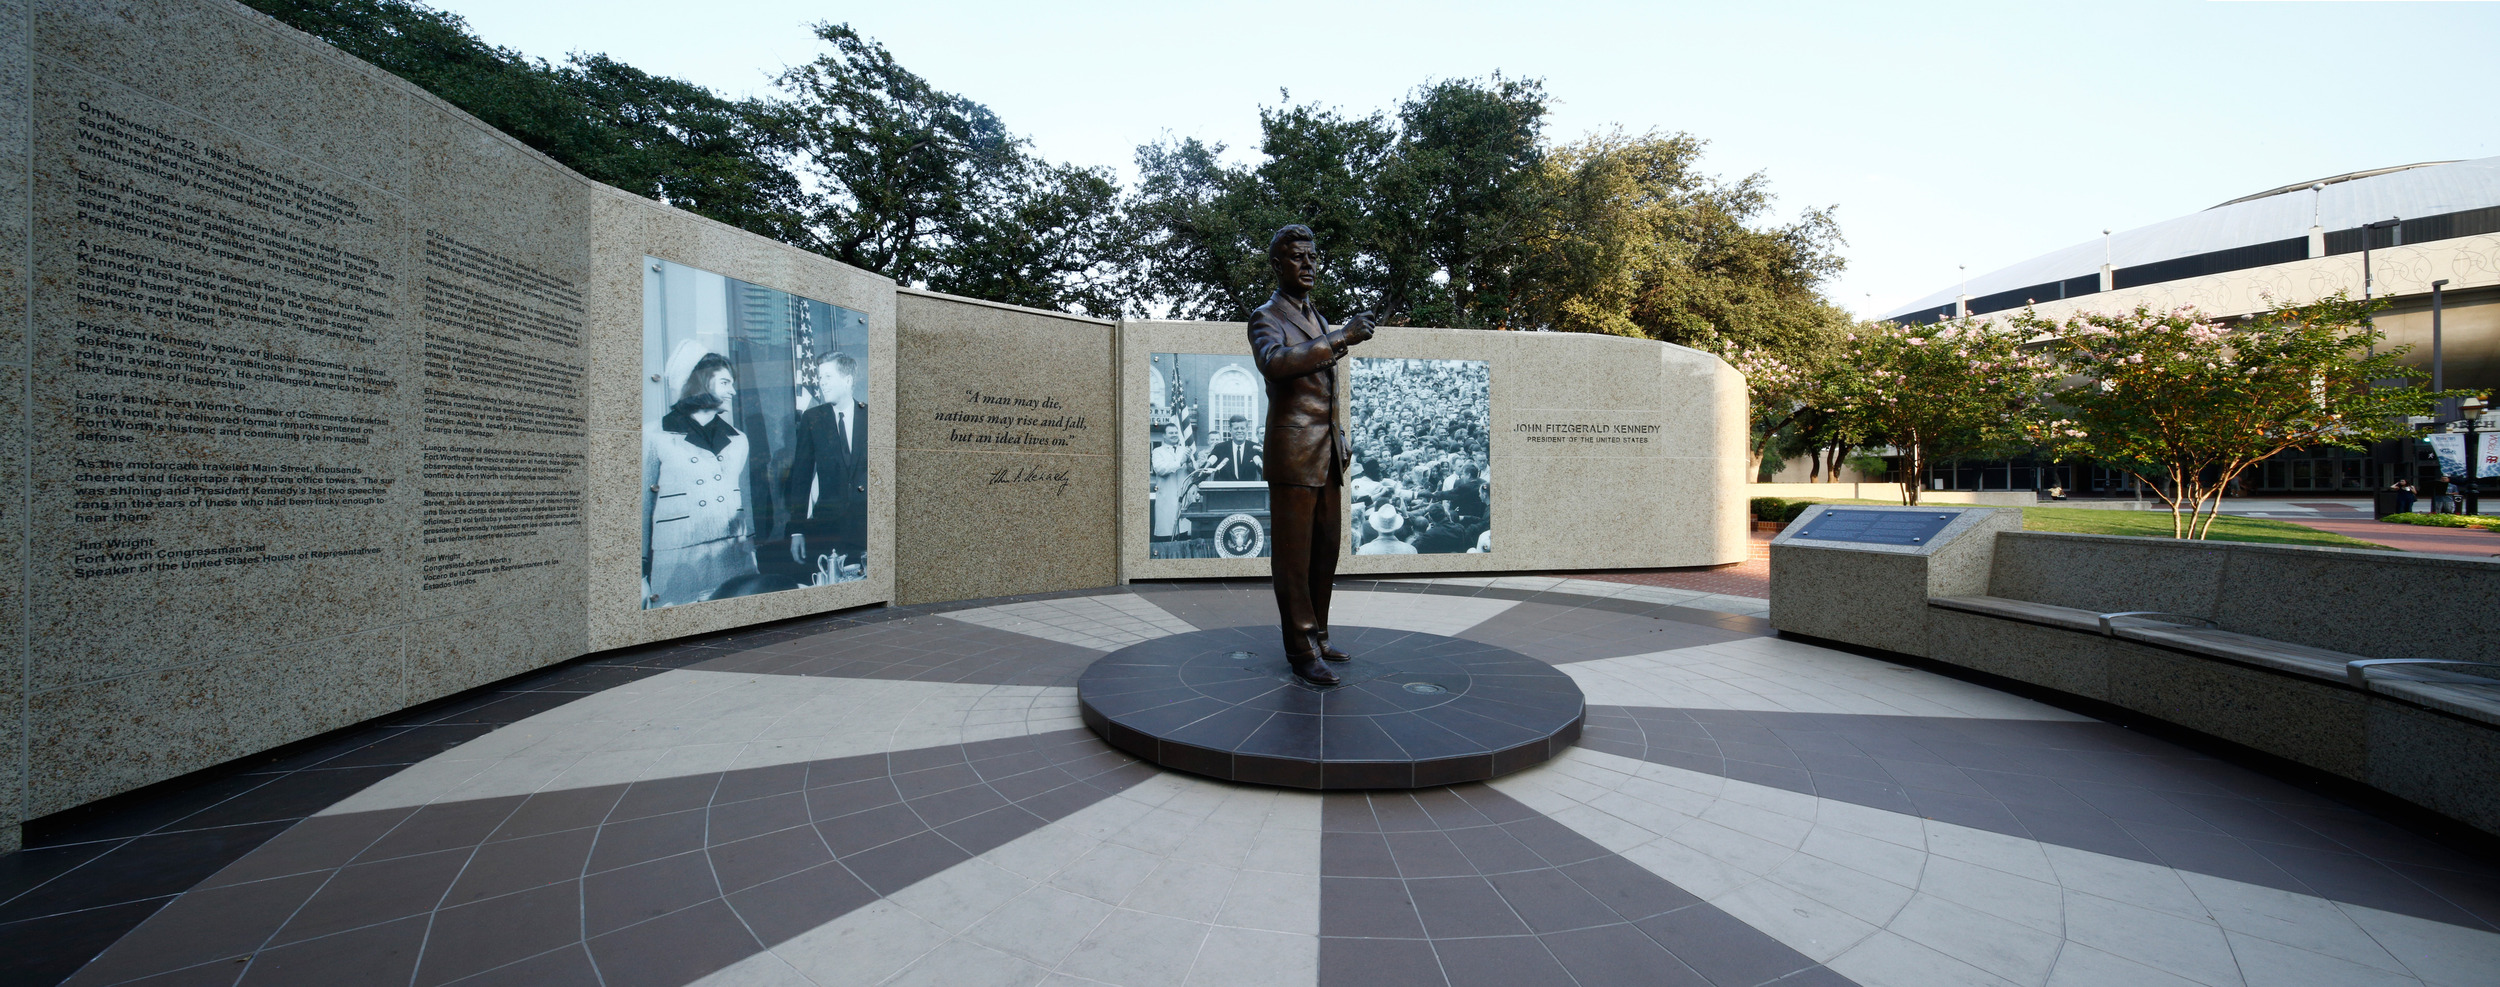 John F. Kennedy Memorial commemorating the young president's final speeches.